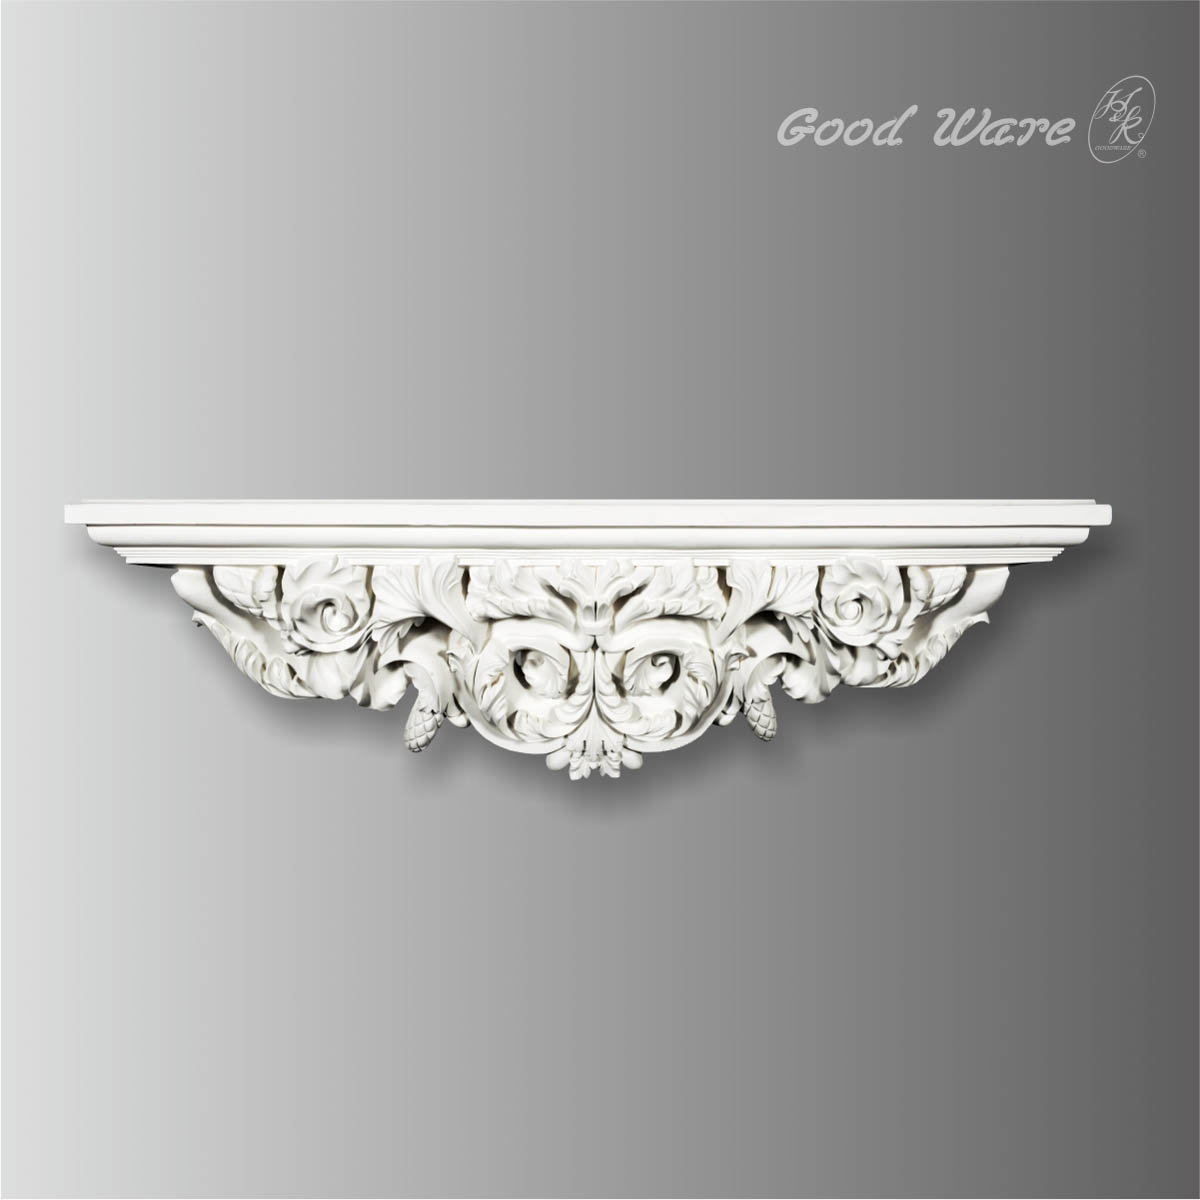 products gb 99655 baroque decorative wall shelves for bathroom